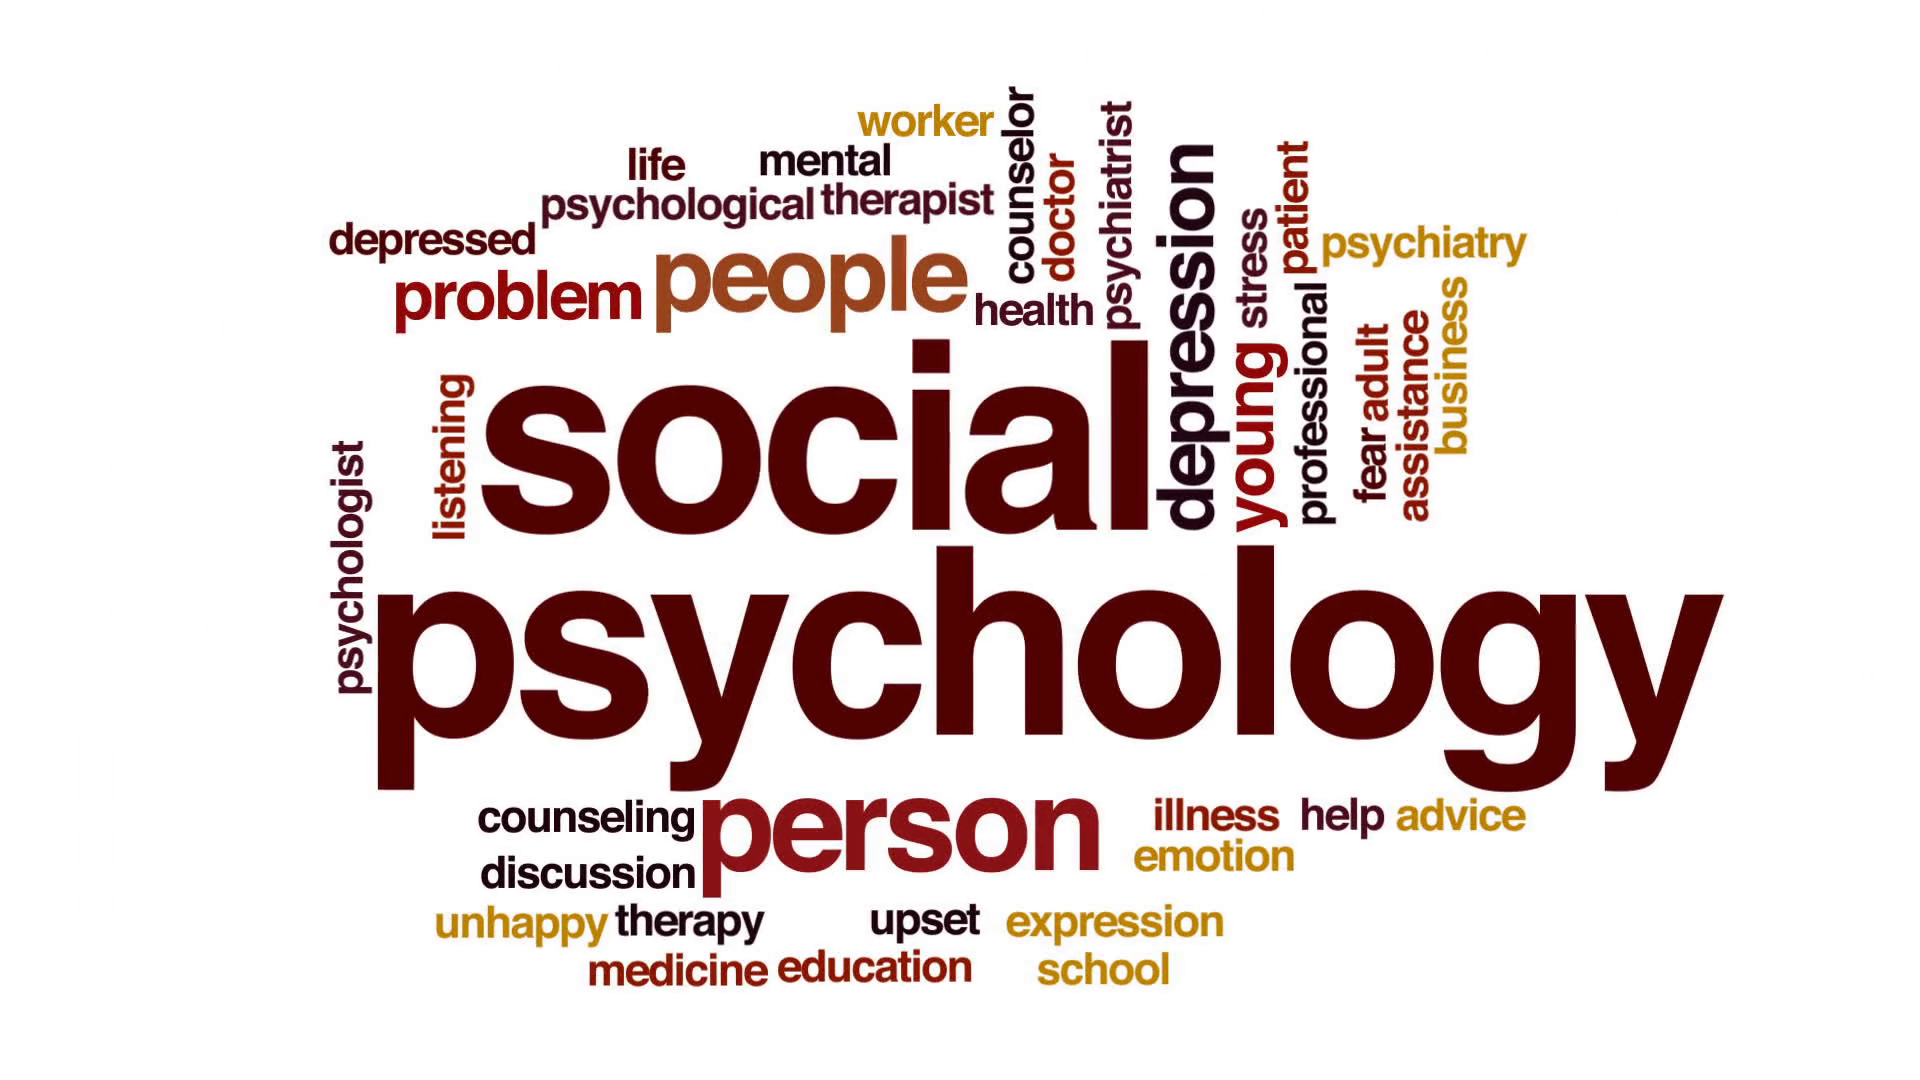 social psychology definition paper The role of social influence processes in social change conformity / majority influence conformity is a type of social influence defined as a change in belief or behavior in response to real or imagined social pressure.